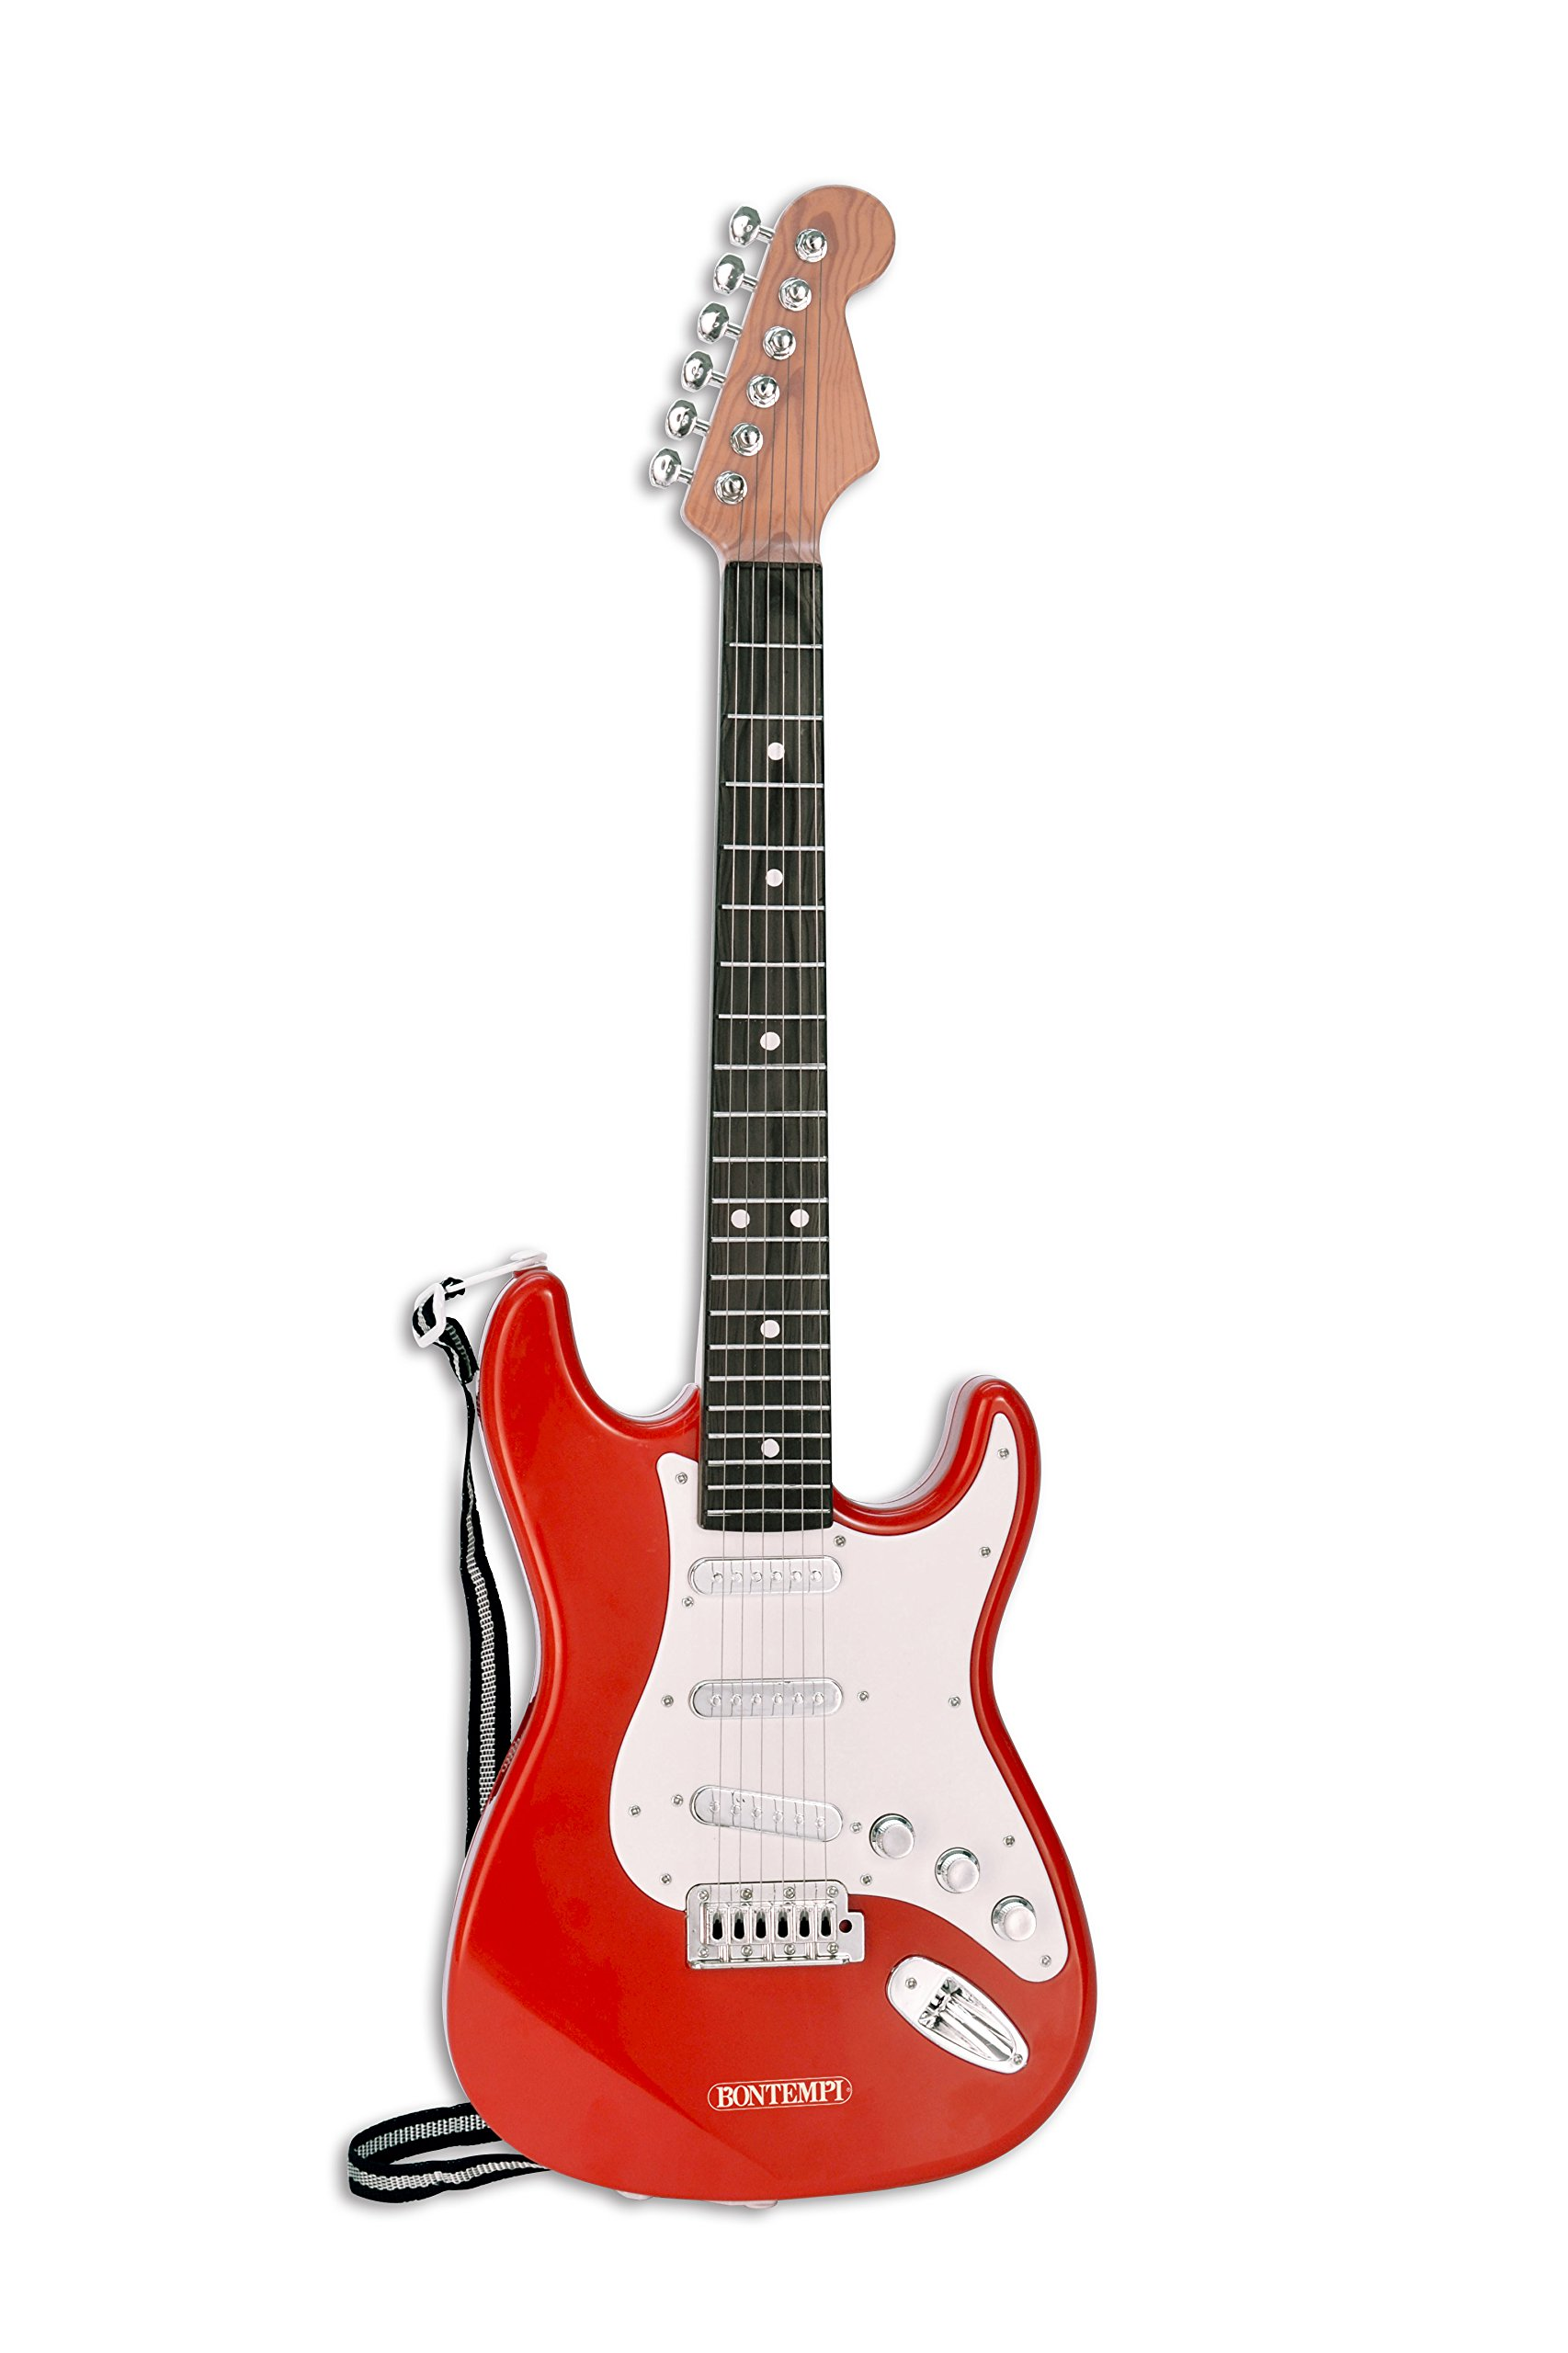 Bontempi 6 String Electric Guitar with pre-loaded songs & shoulder strap - Red by Bontempi